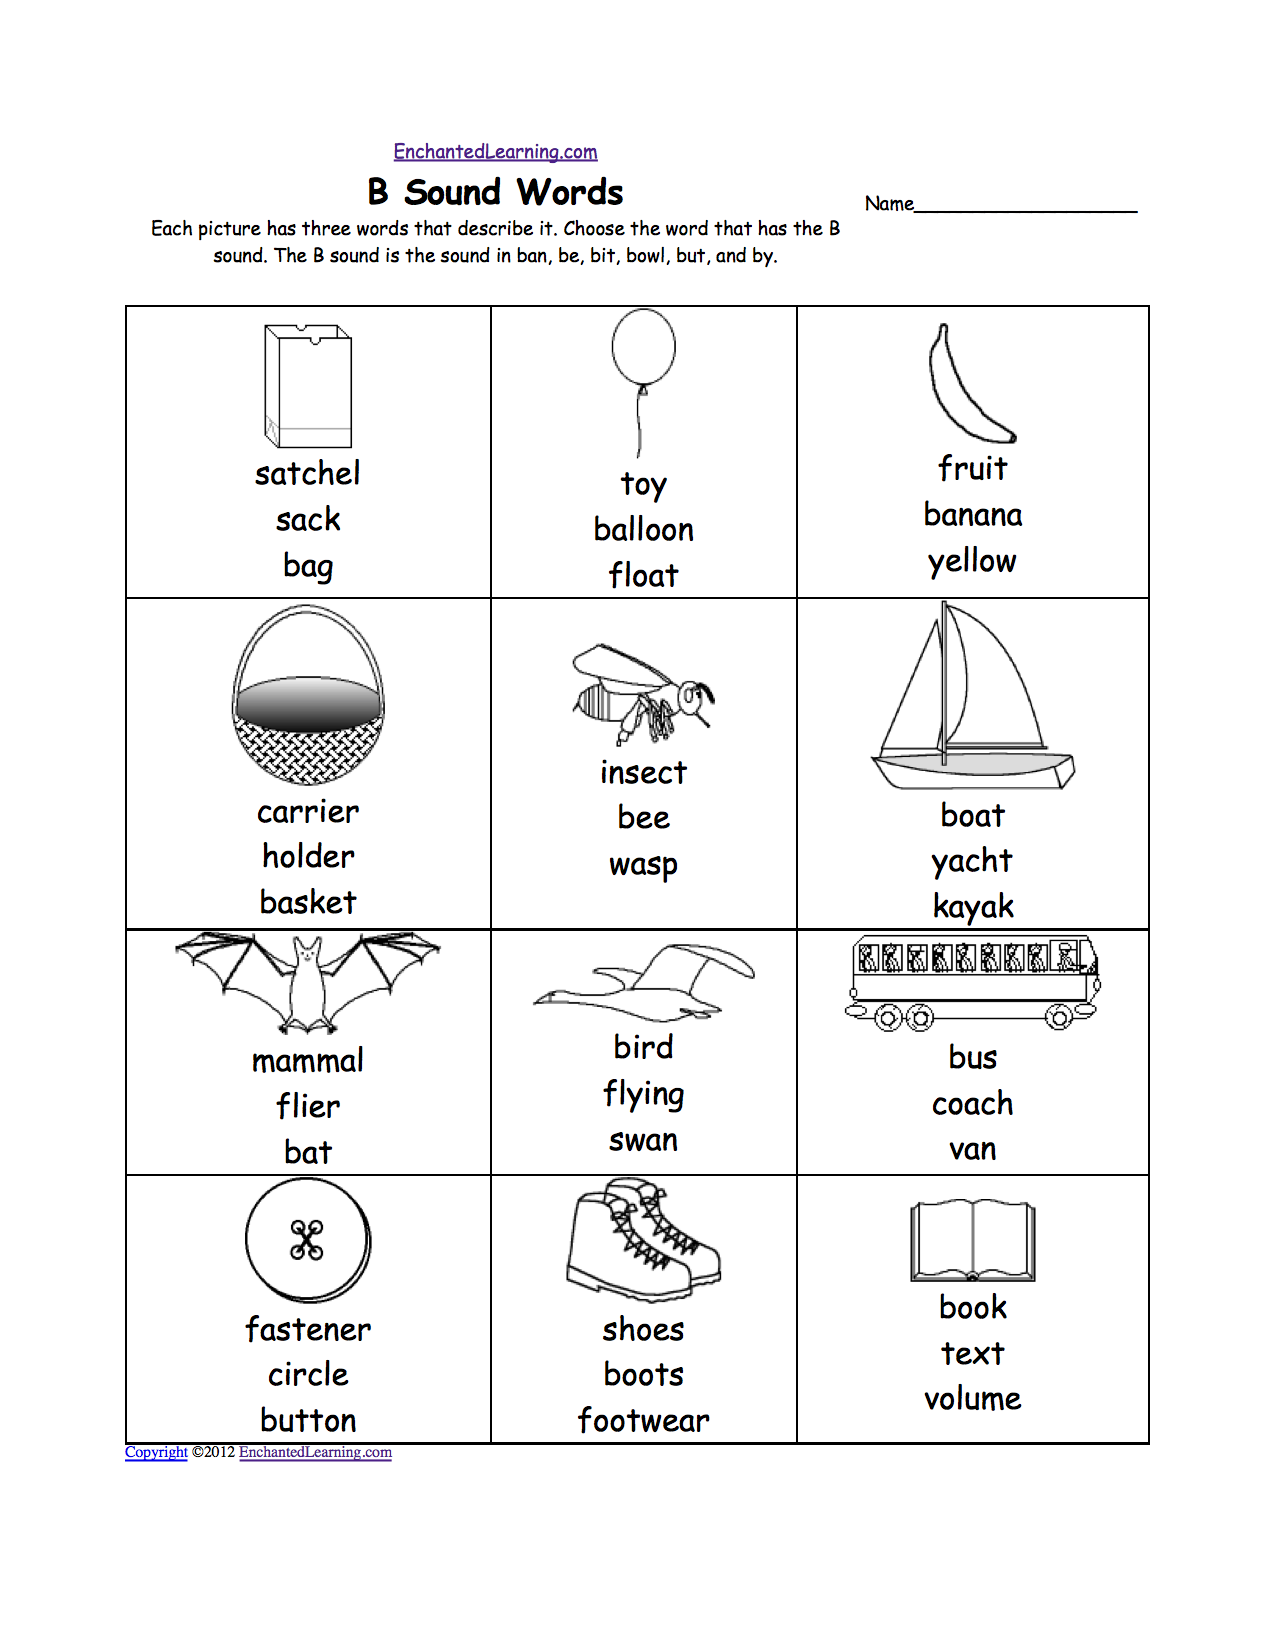 Proatmealus  Marvelous Phonics Worksheets Multiple Choice Worksheets To Print  With Gorgeous Quotbquot Sound Phonics Worksheet Multiple Choice Each Picture Has Three Words That Describe It Choose The Word That Has A Quotbquot Sound The Quotbquot Sound Is The Sound  With Delectable Federal Tax Worksheet Also Procedural Text Worksheets In Addition Rectangle Worksheet And Geometry Worksheet Pdf As Well As Sentence Variety Worksheets Additionally Worksheets For Th Grade From Enchantedlearningcom With Proatmealus  Gorgeous Phonics Worksheets Multiple Choice Worksheets To Print  With Delectable Quotbquot Sound Phonics Worksheet Multiple Choice Each Picture Has Three Words That Describe It Choose The Word That Has A Quotbquot Sound The Quotbquot Sound Is The Sound  And Marvelous Federal Tax Worksheet Also Procedural Text Worksheets In Addition Rectangle Worksheet From Enchantedlearningcom